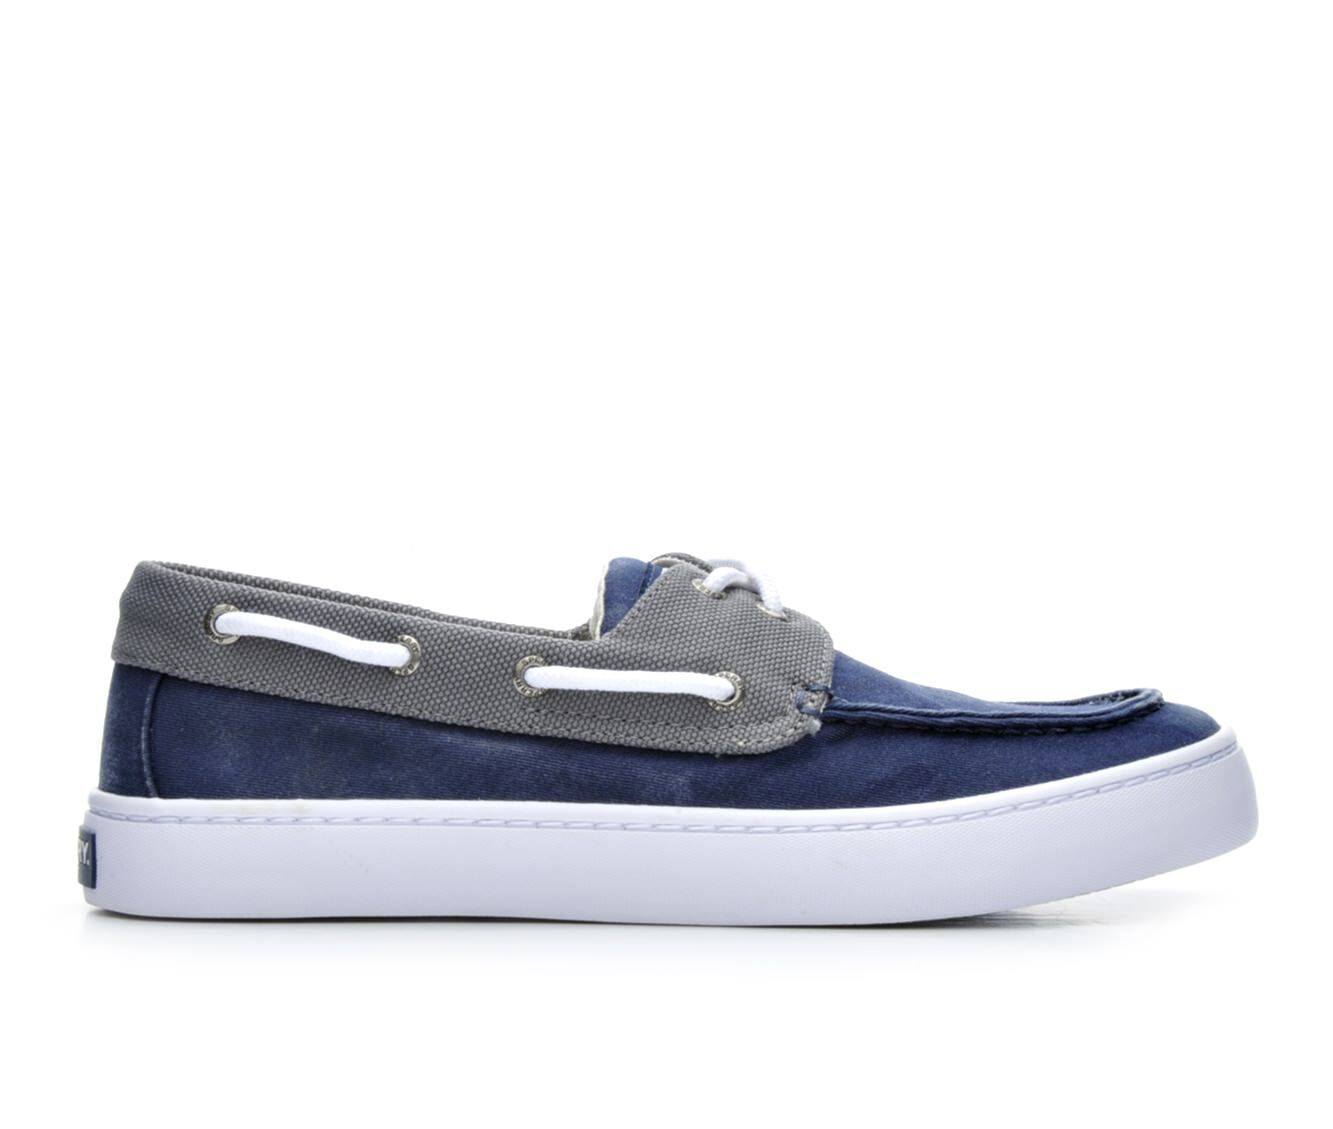 choose comfortable new Men's Sperry Cutter 2 Eye Boat Shoes Navy/Grey